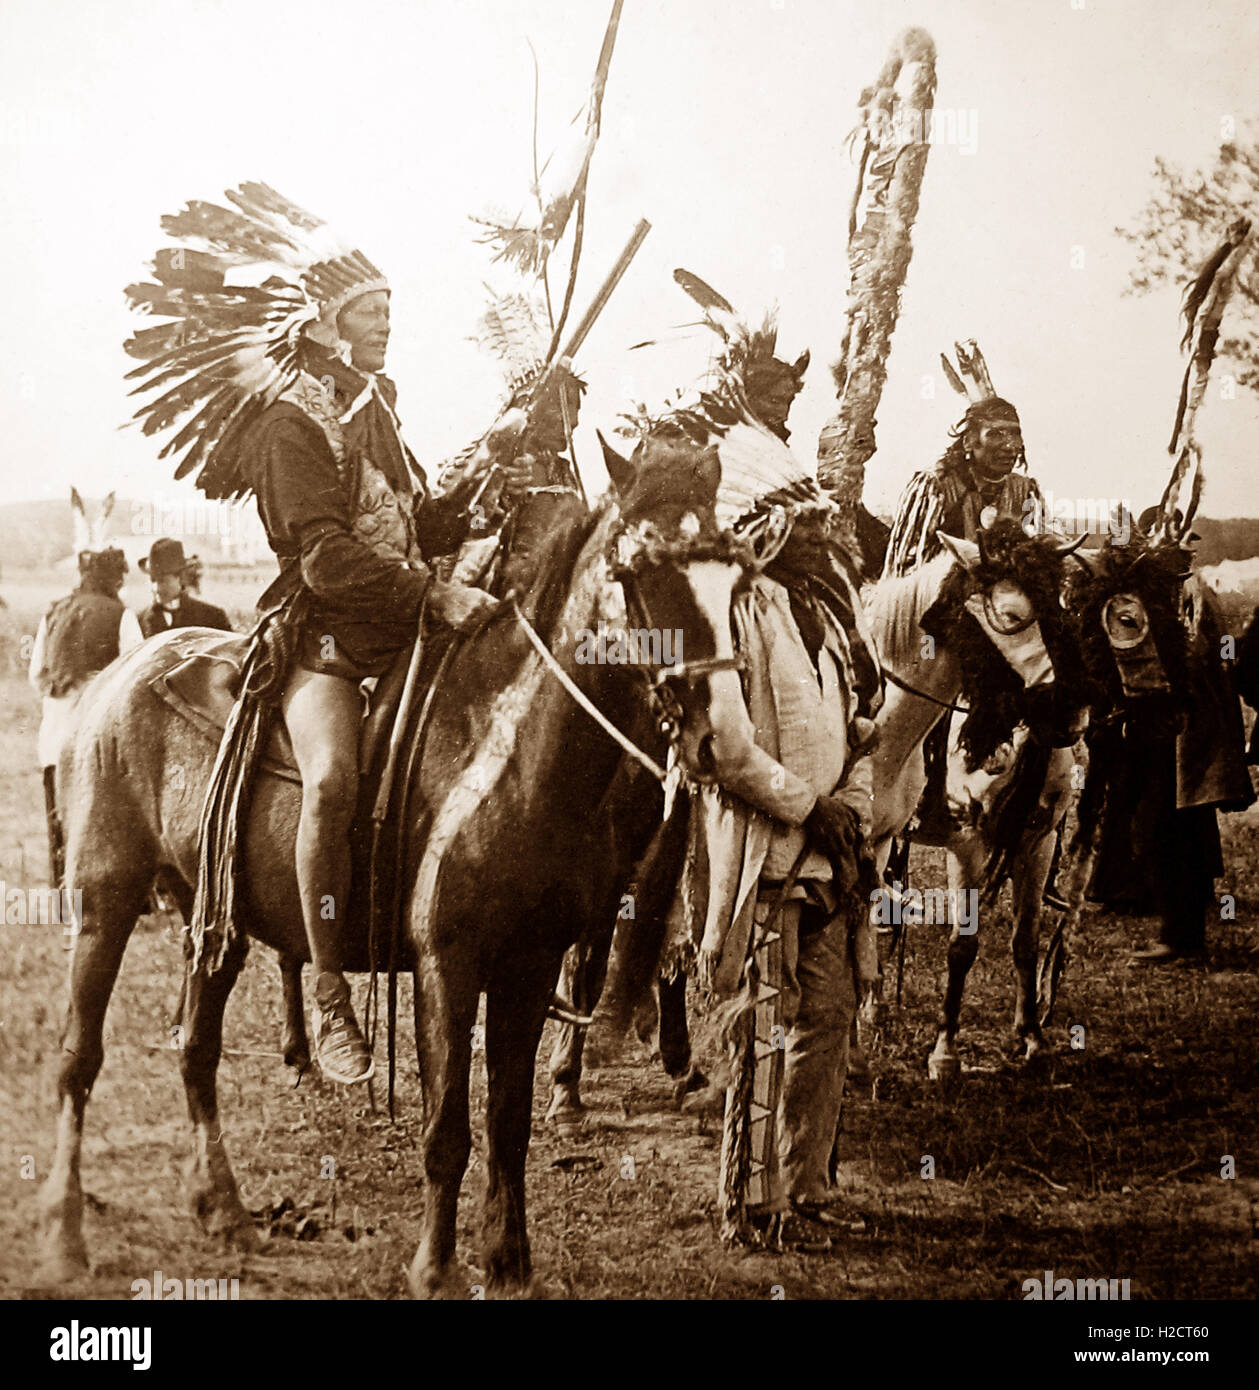 Sioux Indians, Colorado, USA - early 1900s - Stock Image